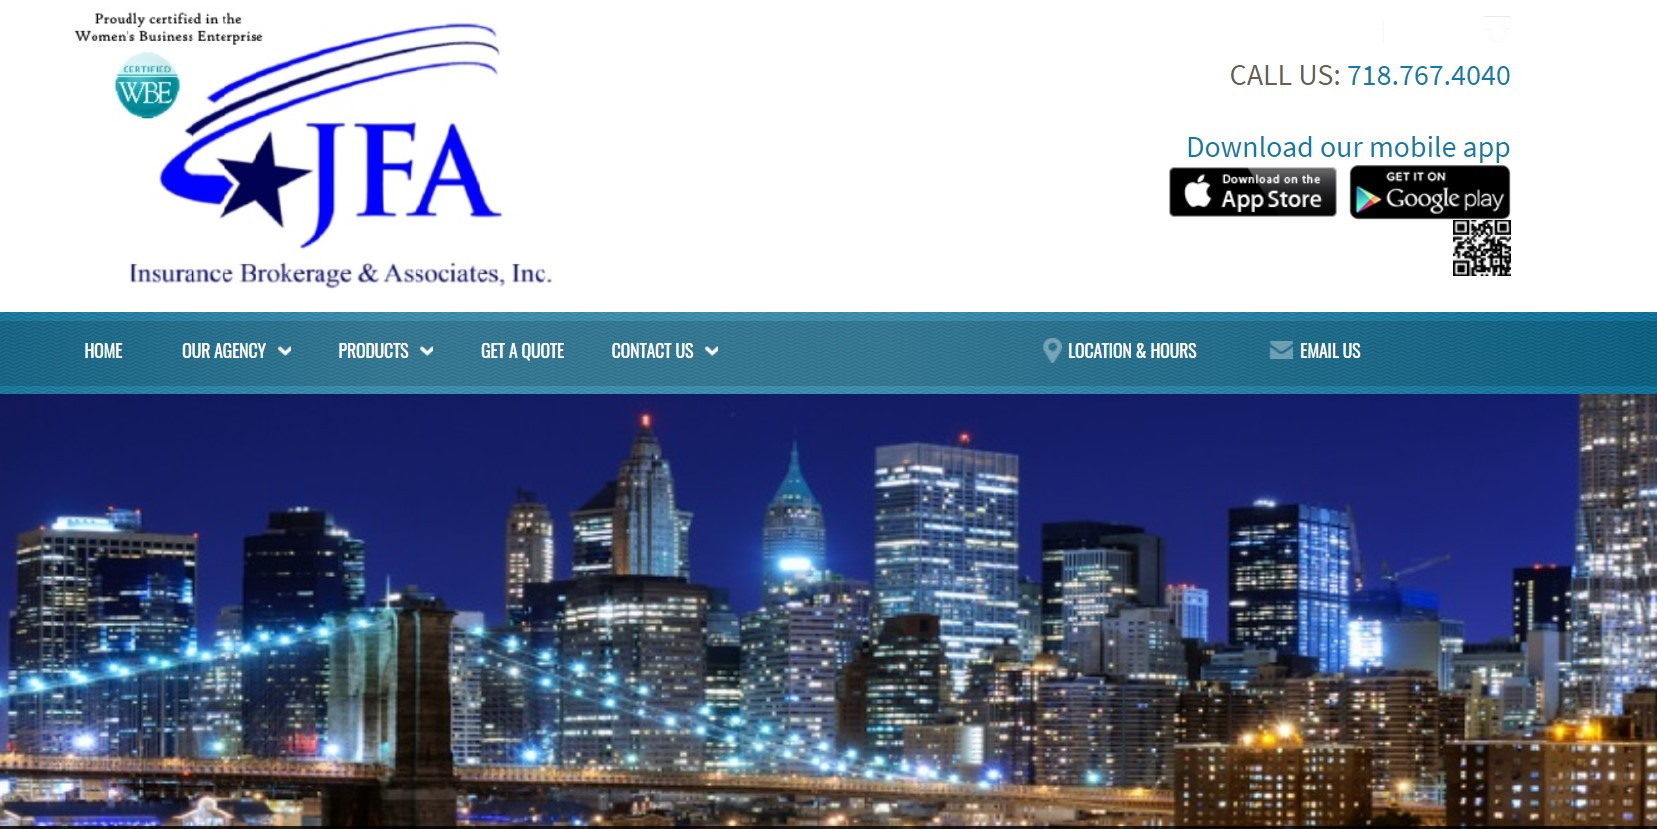 jfa insurance broker in new york